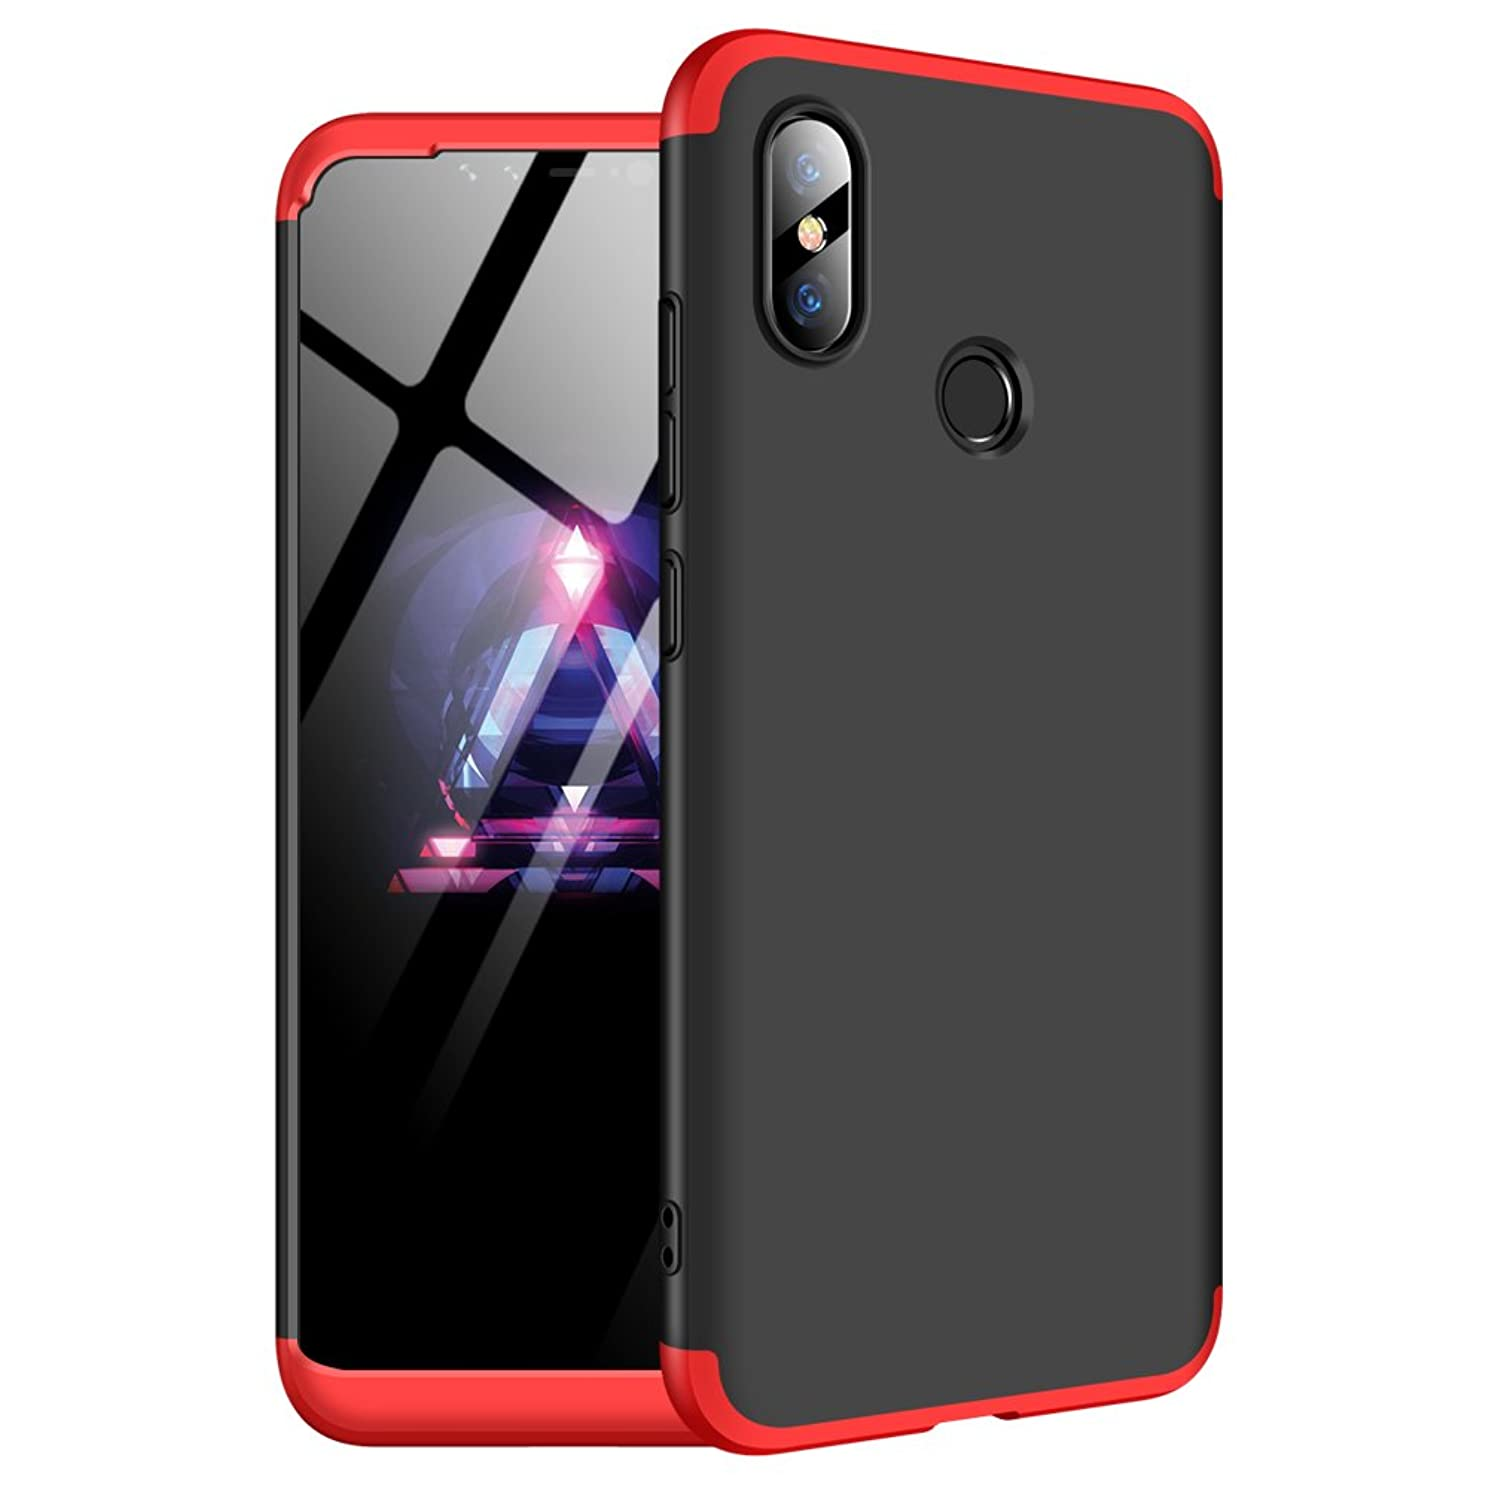 Case Compatible with Xiaomi MI8 Case 3 in 1 Smooth Hard PC Fit Bumper Protection for Xiaomi MI8 Cover 2018 (Black+red, Xiaomi MI8)